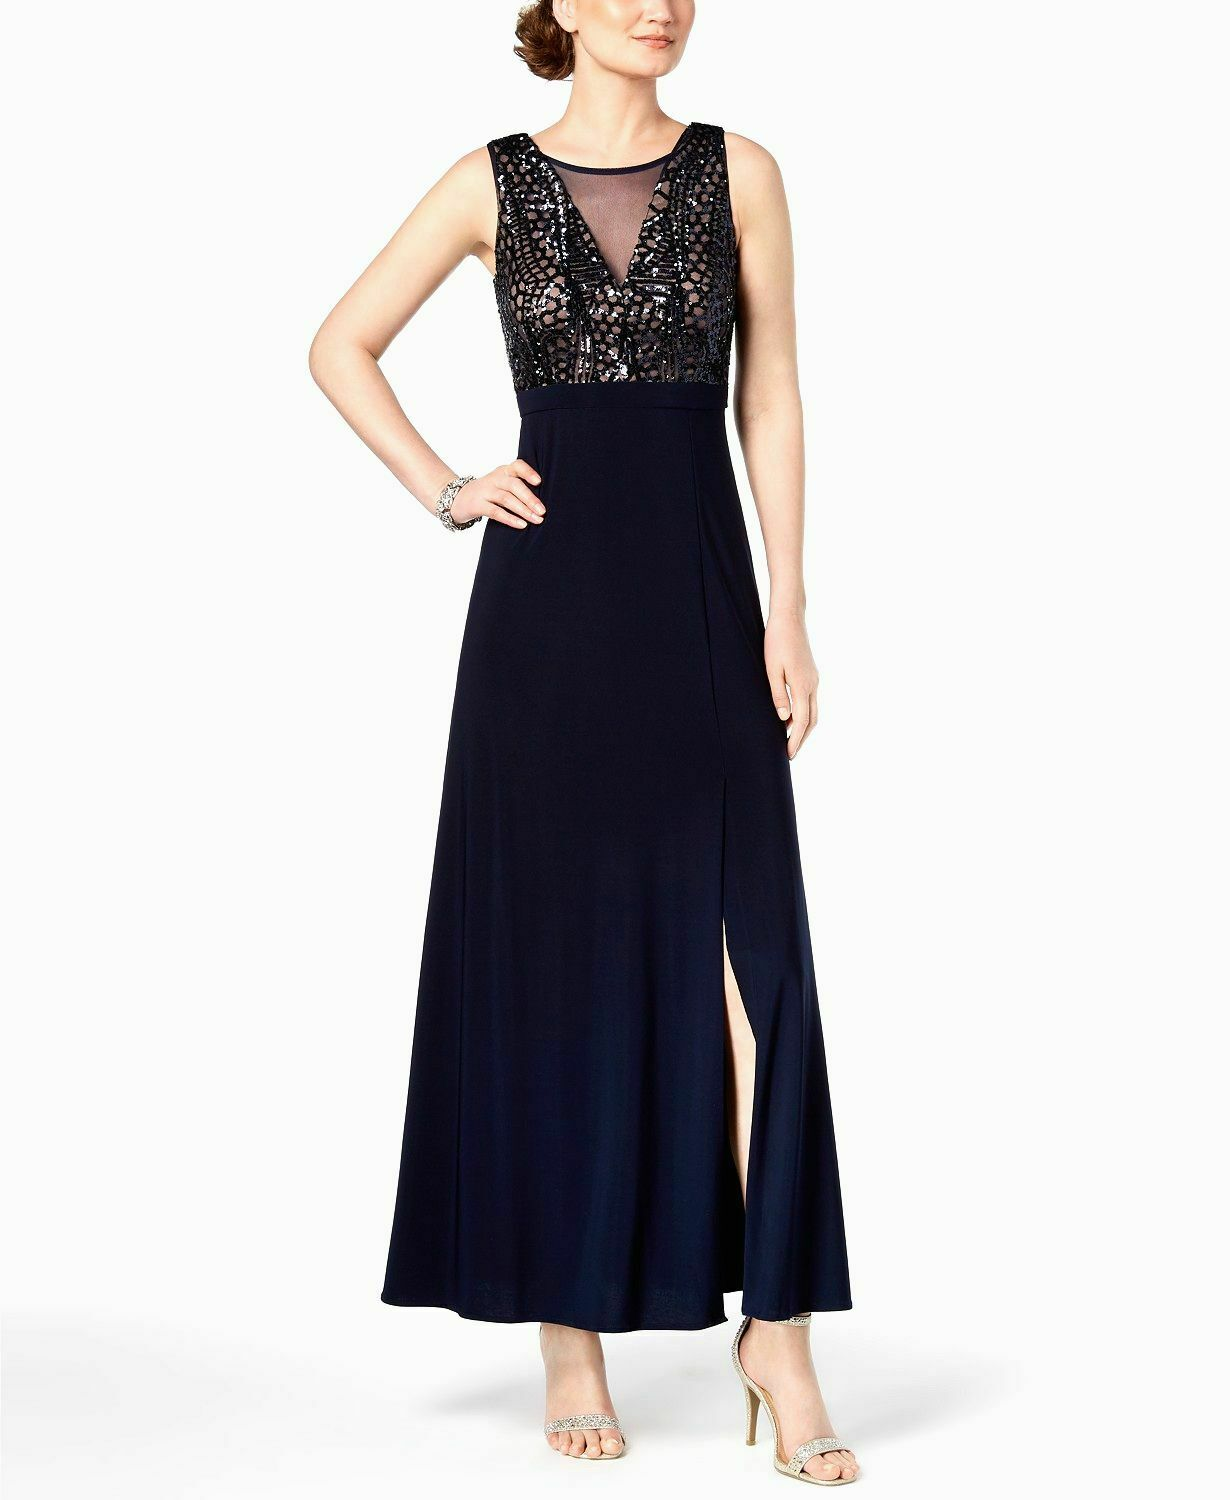 NIGHTWAY WOMEN'S blueE SEQUINED LONG MESH GOWN A-LINE DRESS SIZE 14